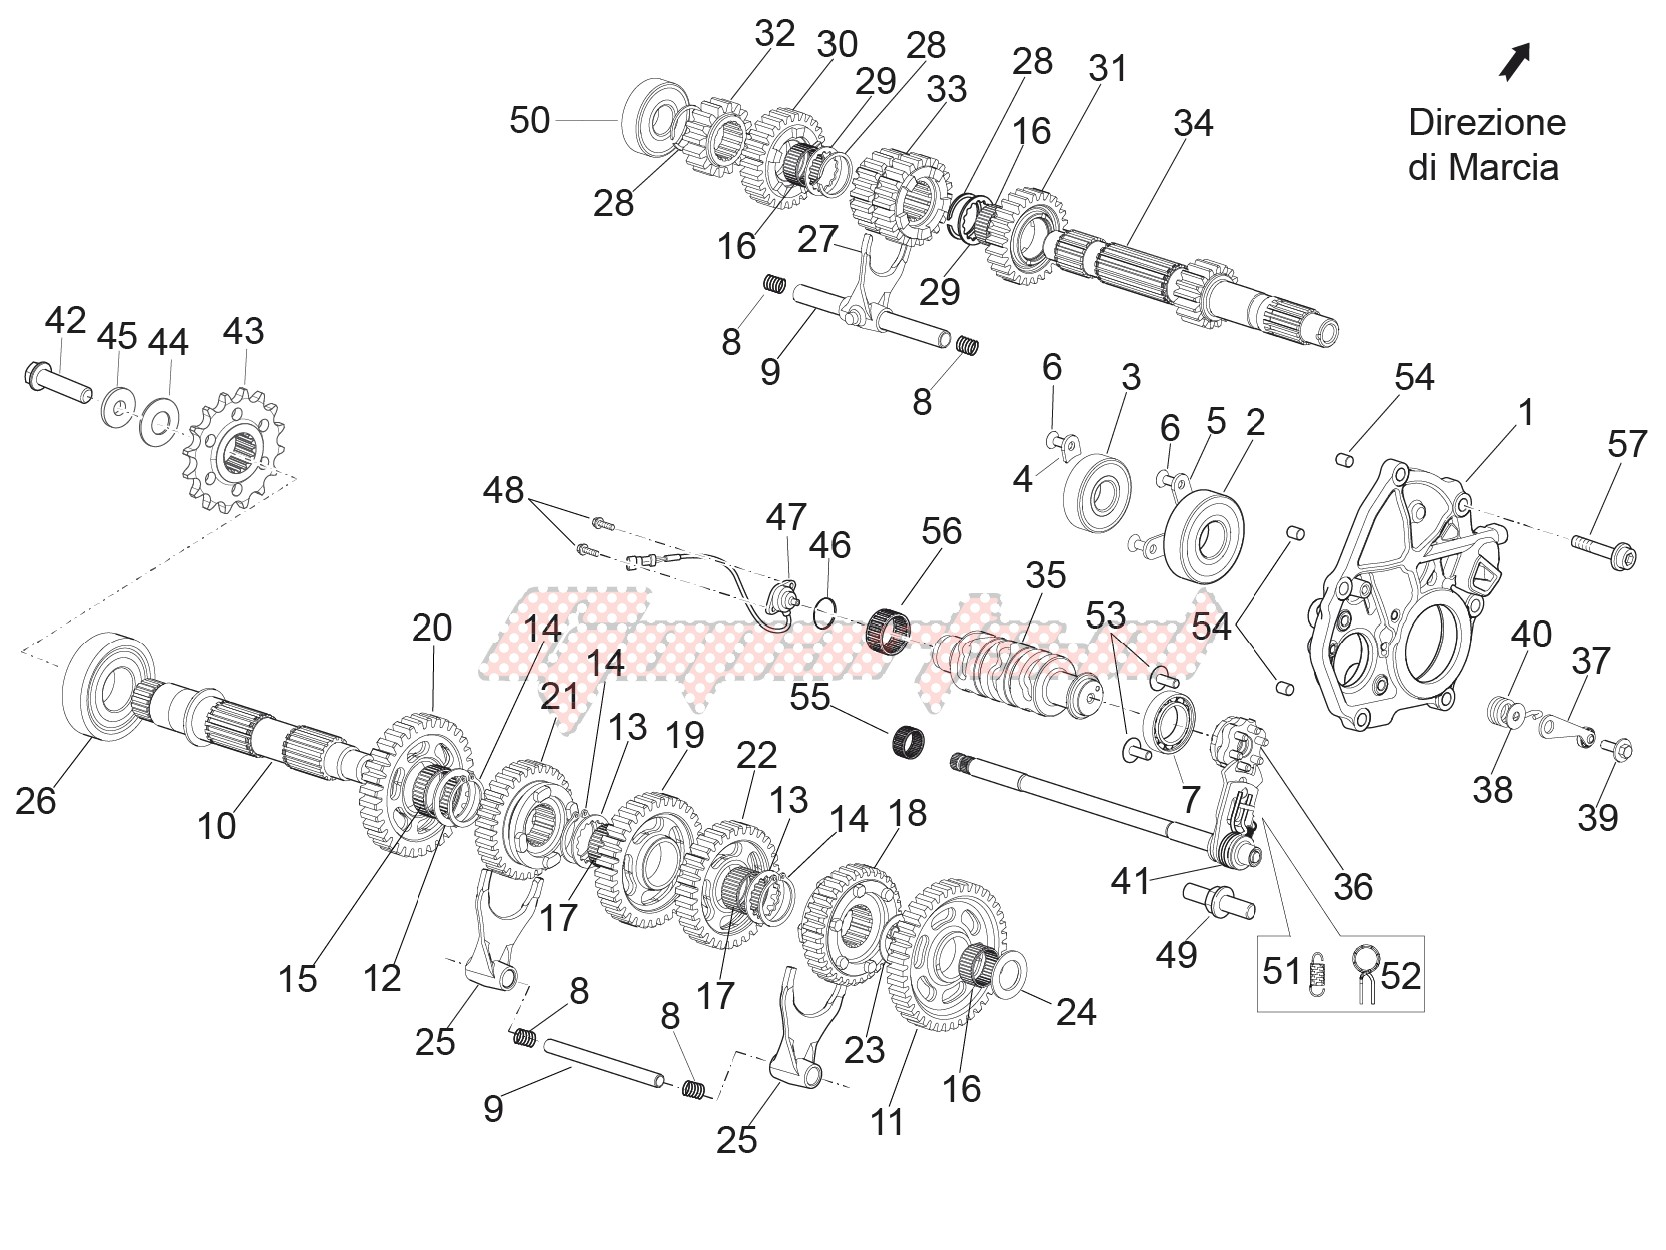 Gear box - Gear assembly image